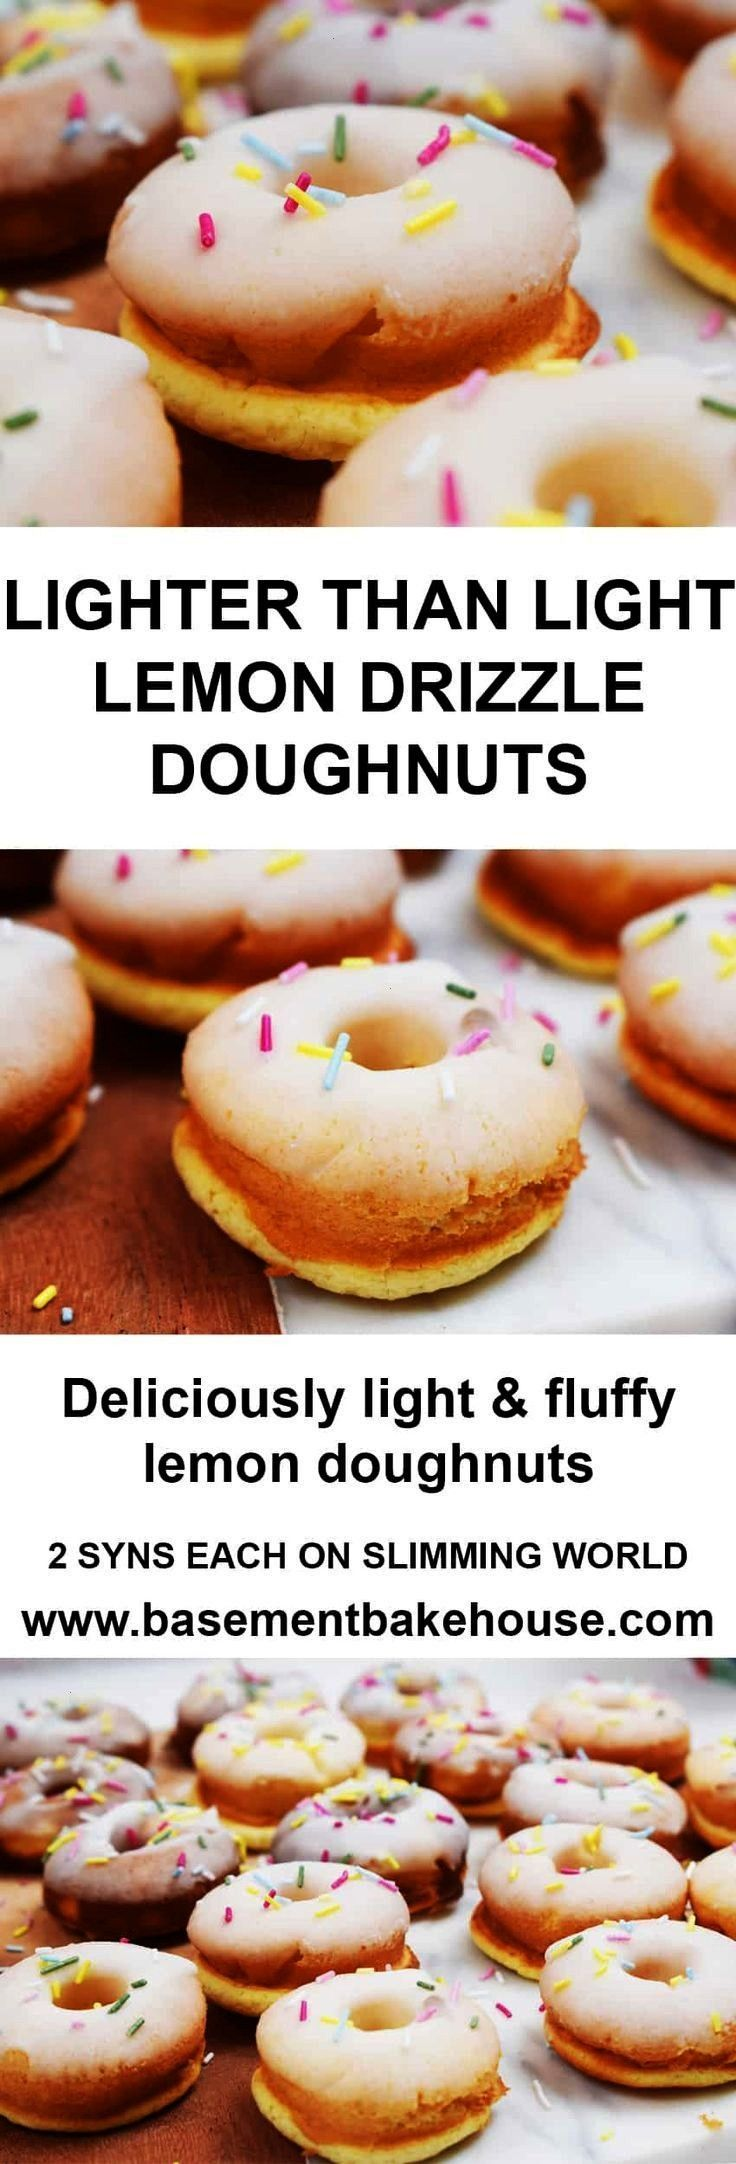 Than Light Lemon Drizzle Doughnuts - Low Syn on Slimming World - Healthy... - -  Lighter Than Light